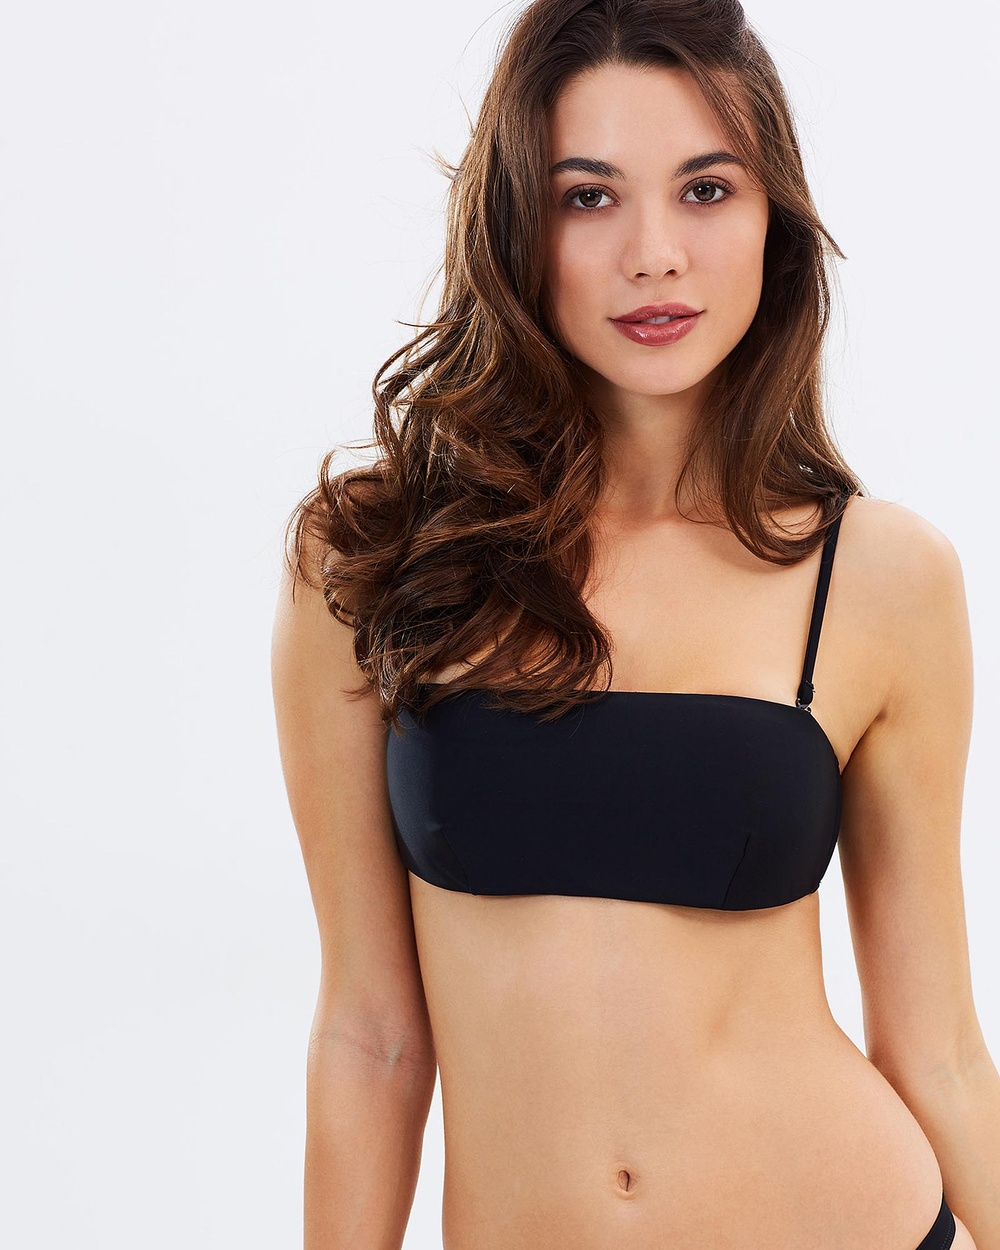 Tanliines The Bronte Cate Top Bikini Tops Black The Bronte Cate Top